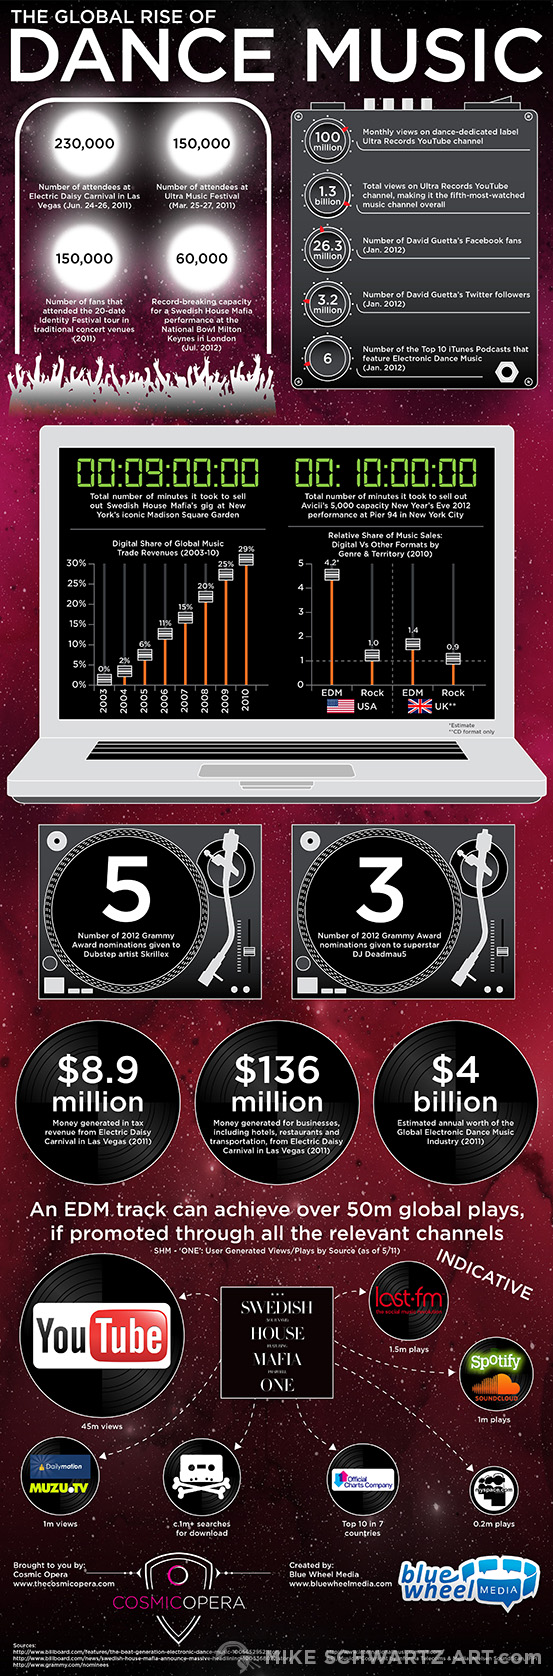 Mike-Schwartz-Infographic-Dance-Music-full.jpg